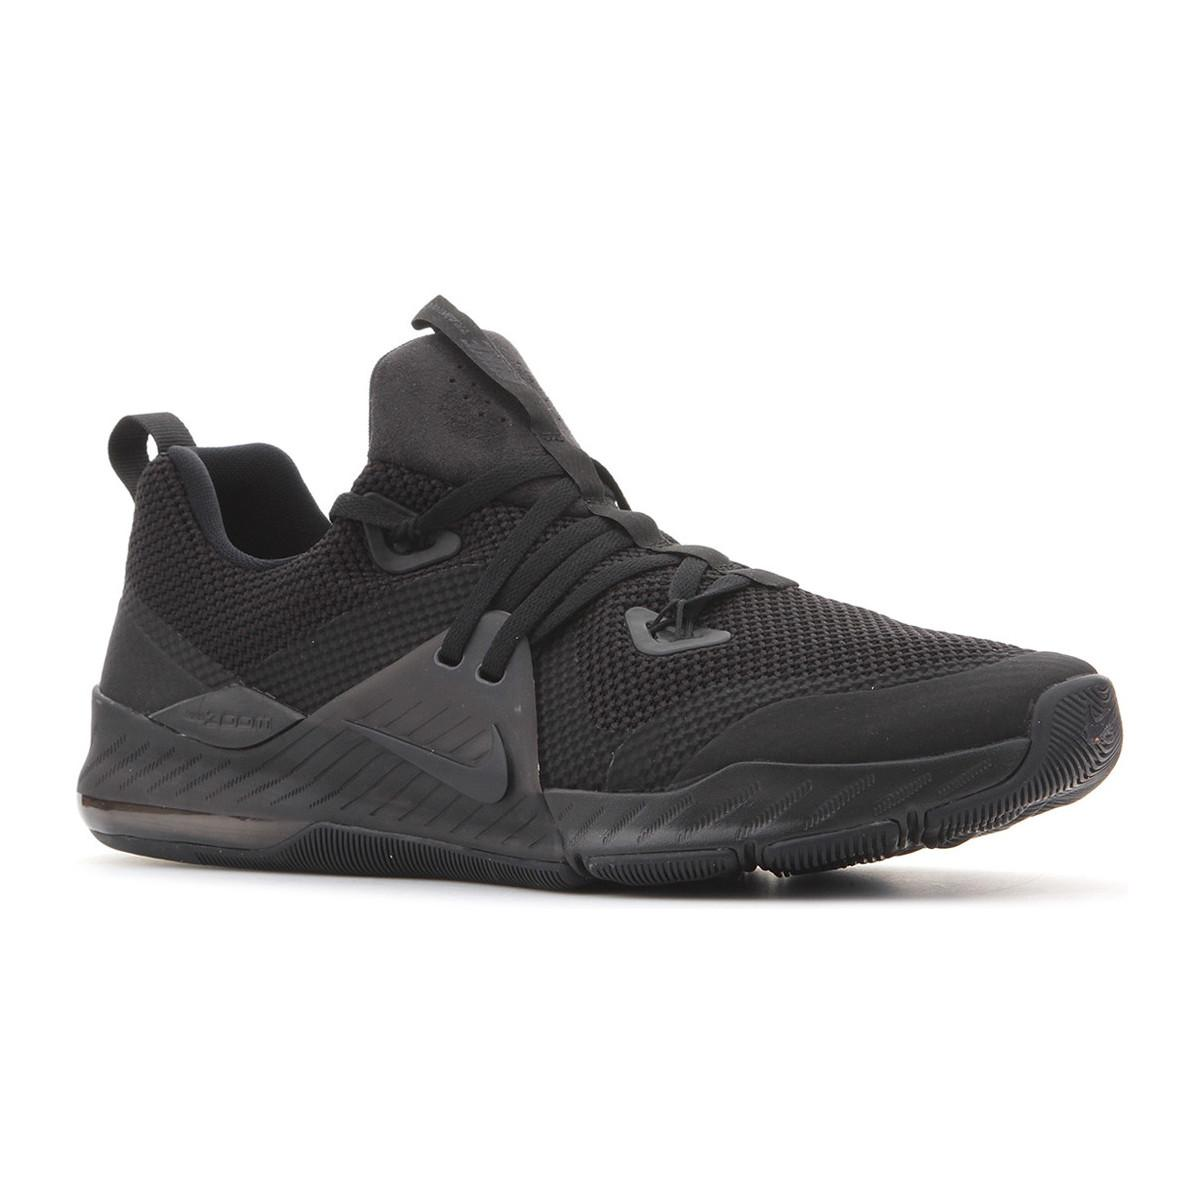 6cb93c10db08 Nike - Zoom Train Command 922478-004 Men s Shoes (trainers) In Black for.  View fullscreen